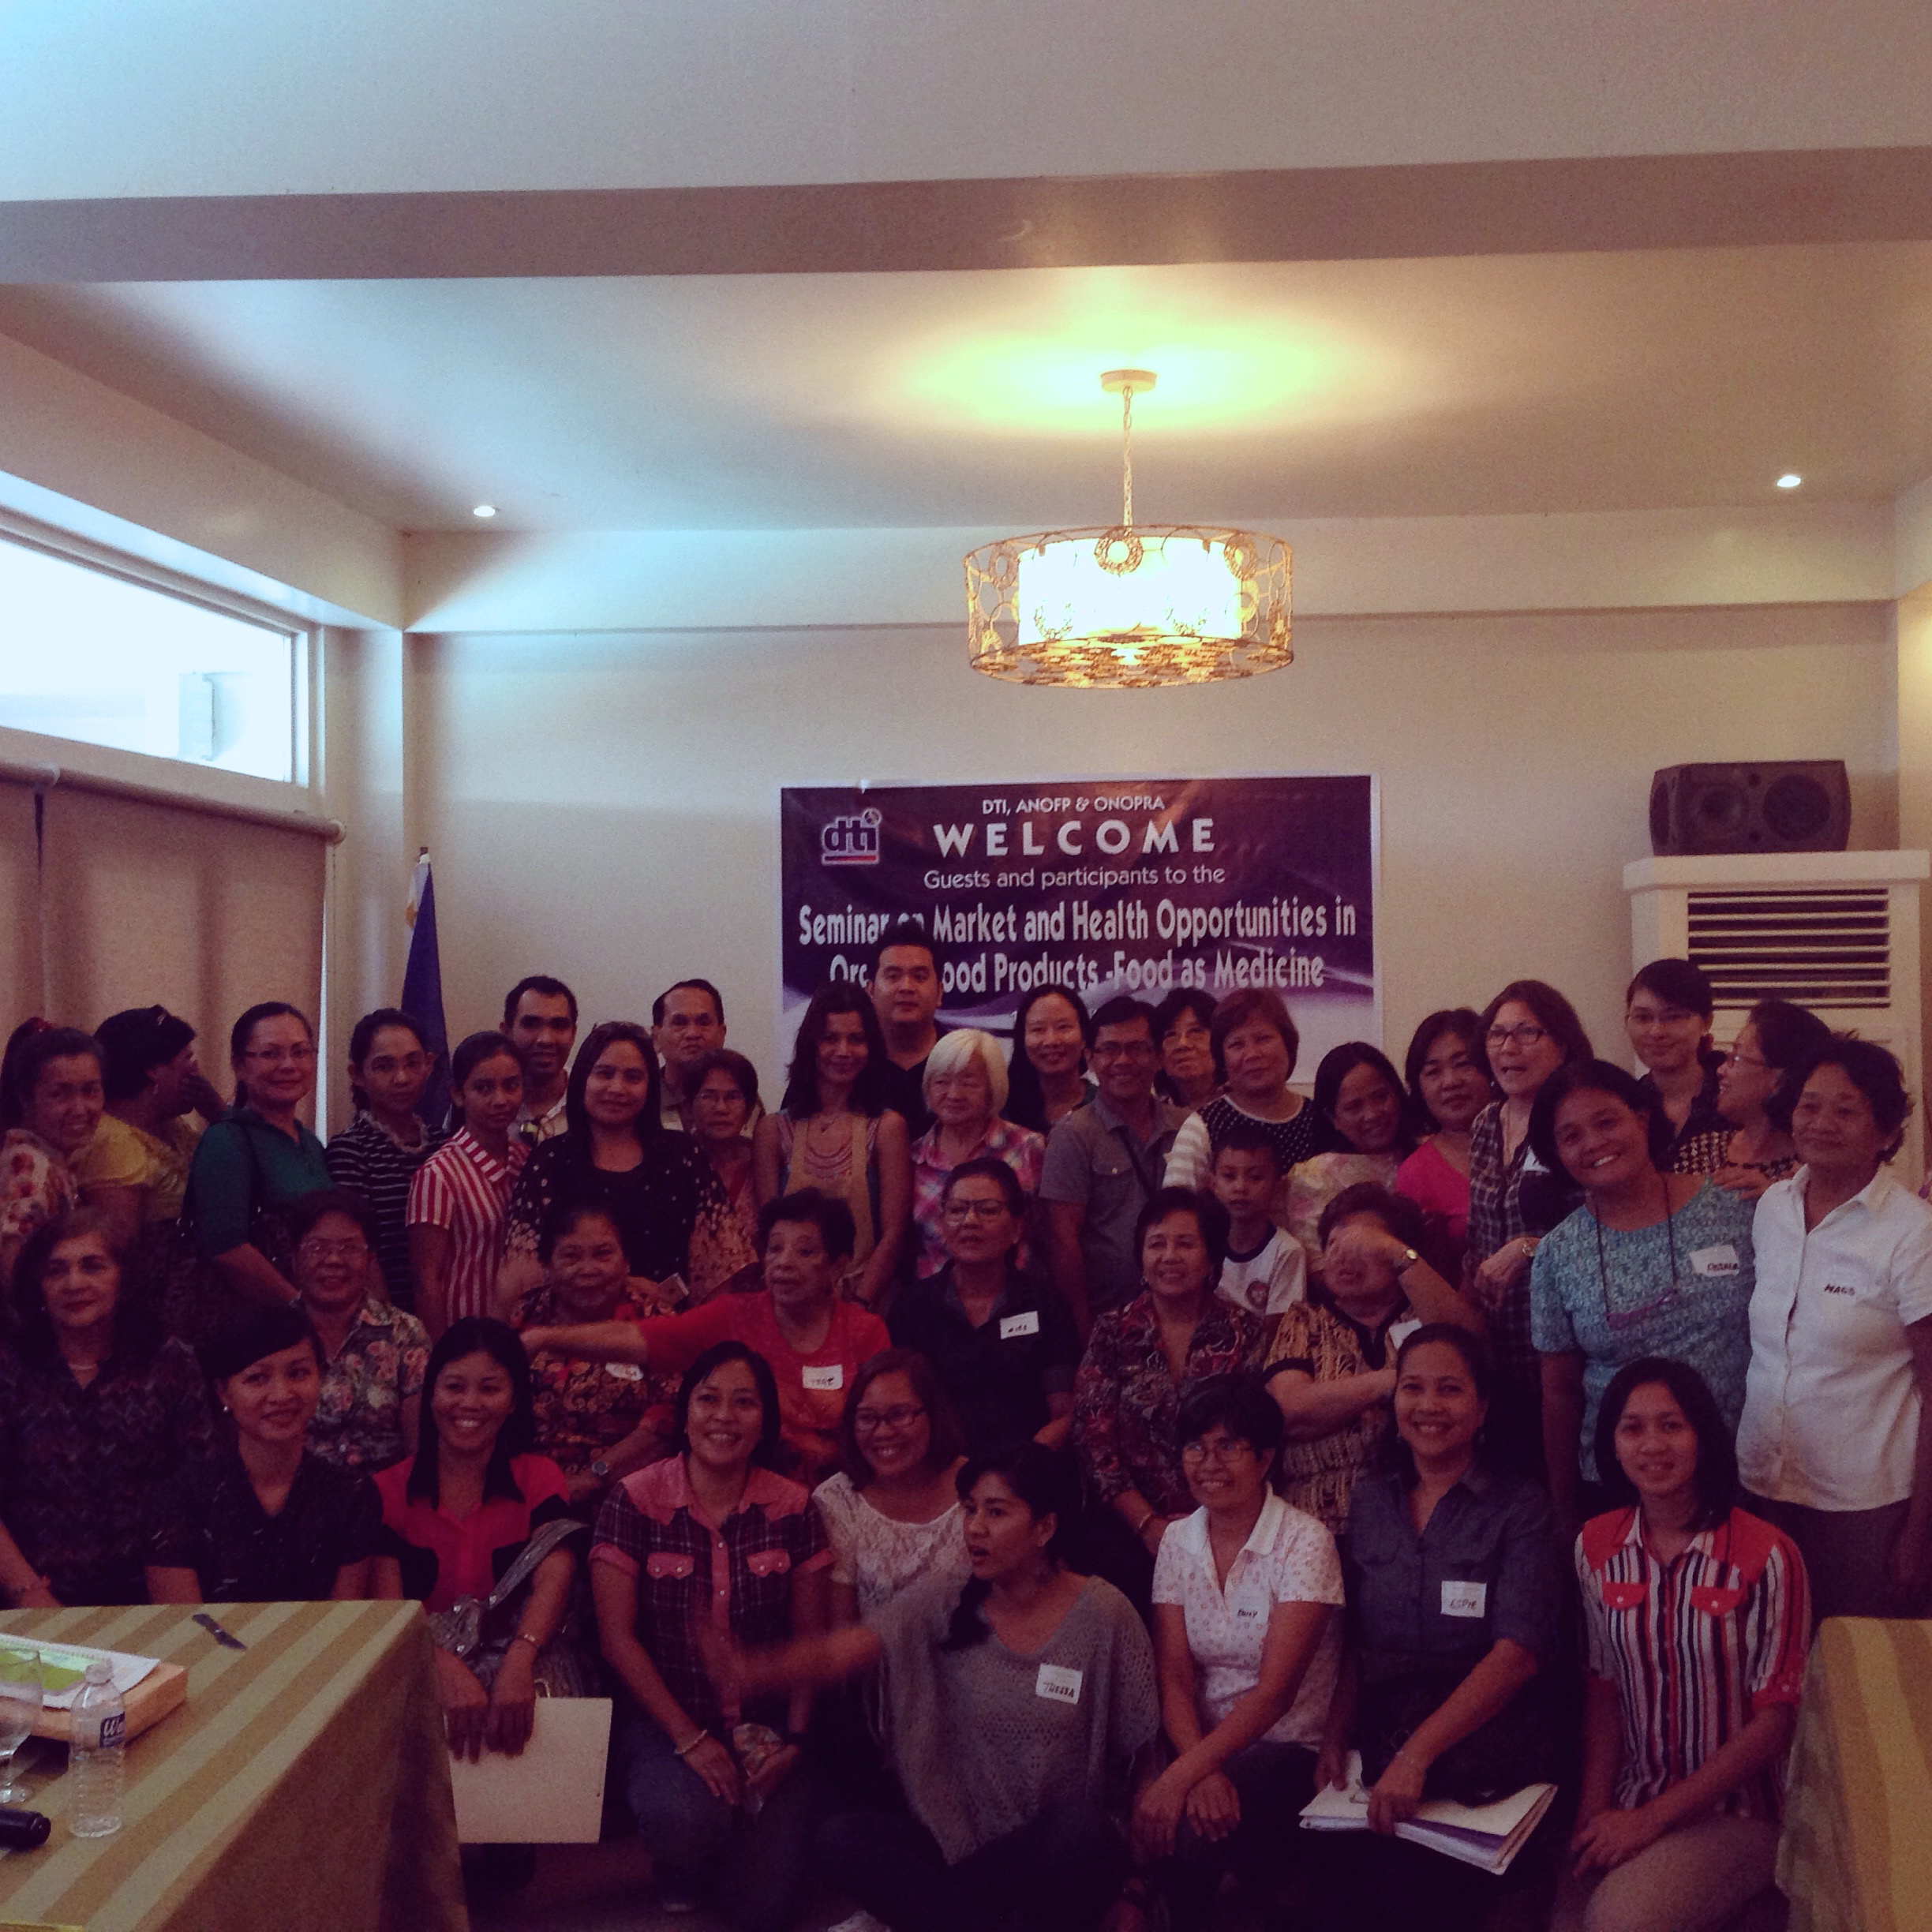 The delegates of the Plantbased nutrition convention consisted by mostly entrepreneurs and small business in the area.